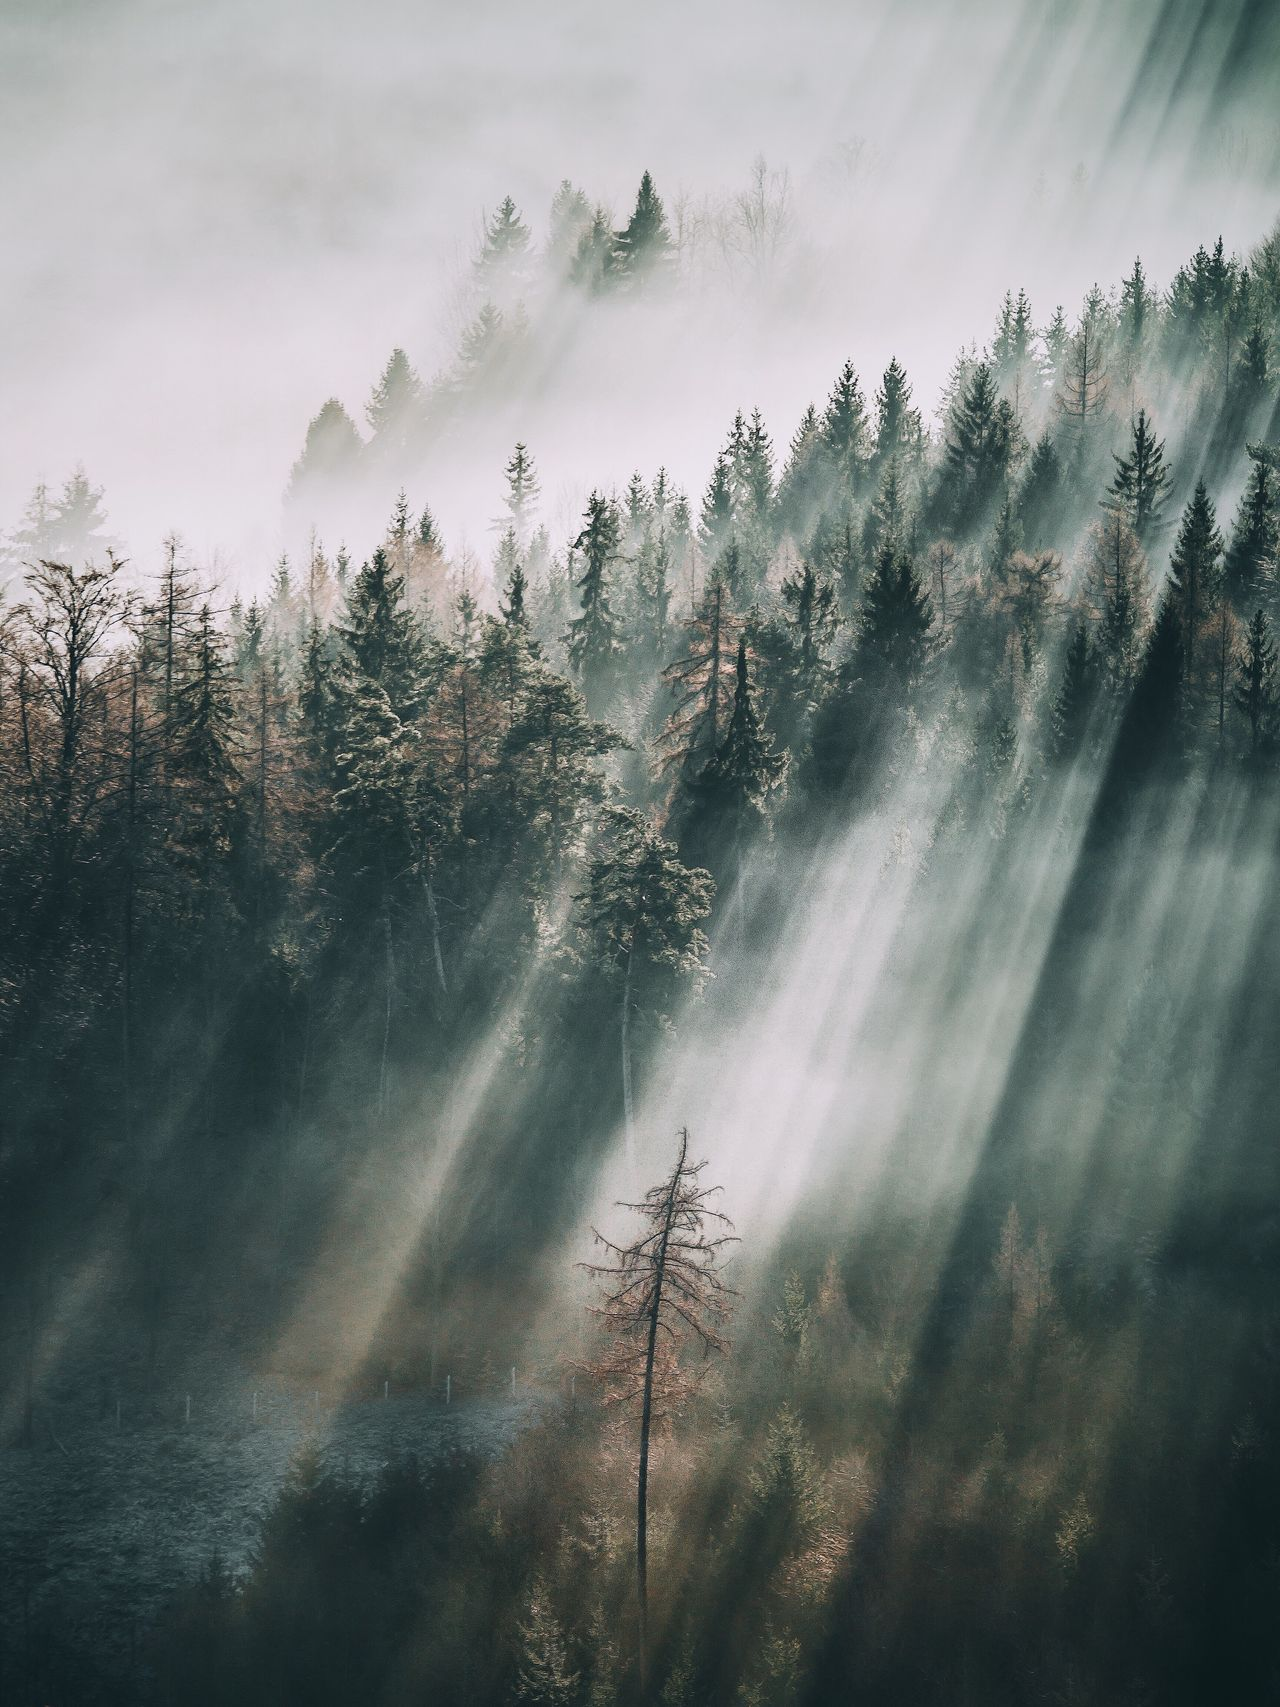 Tree Nature Tranquility Beauty In Nature Growth Scenics No People Tranquil Scene Outdoors Day Forest Fog Sky Landscape